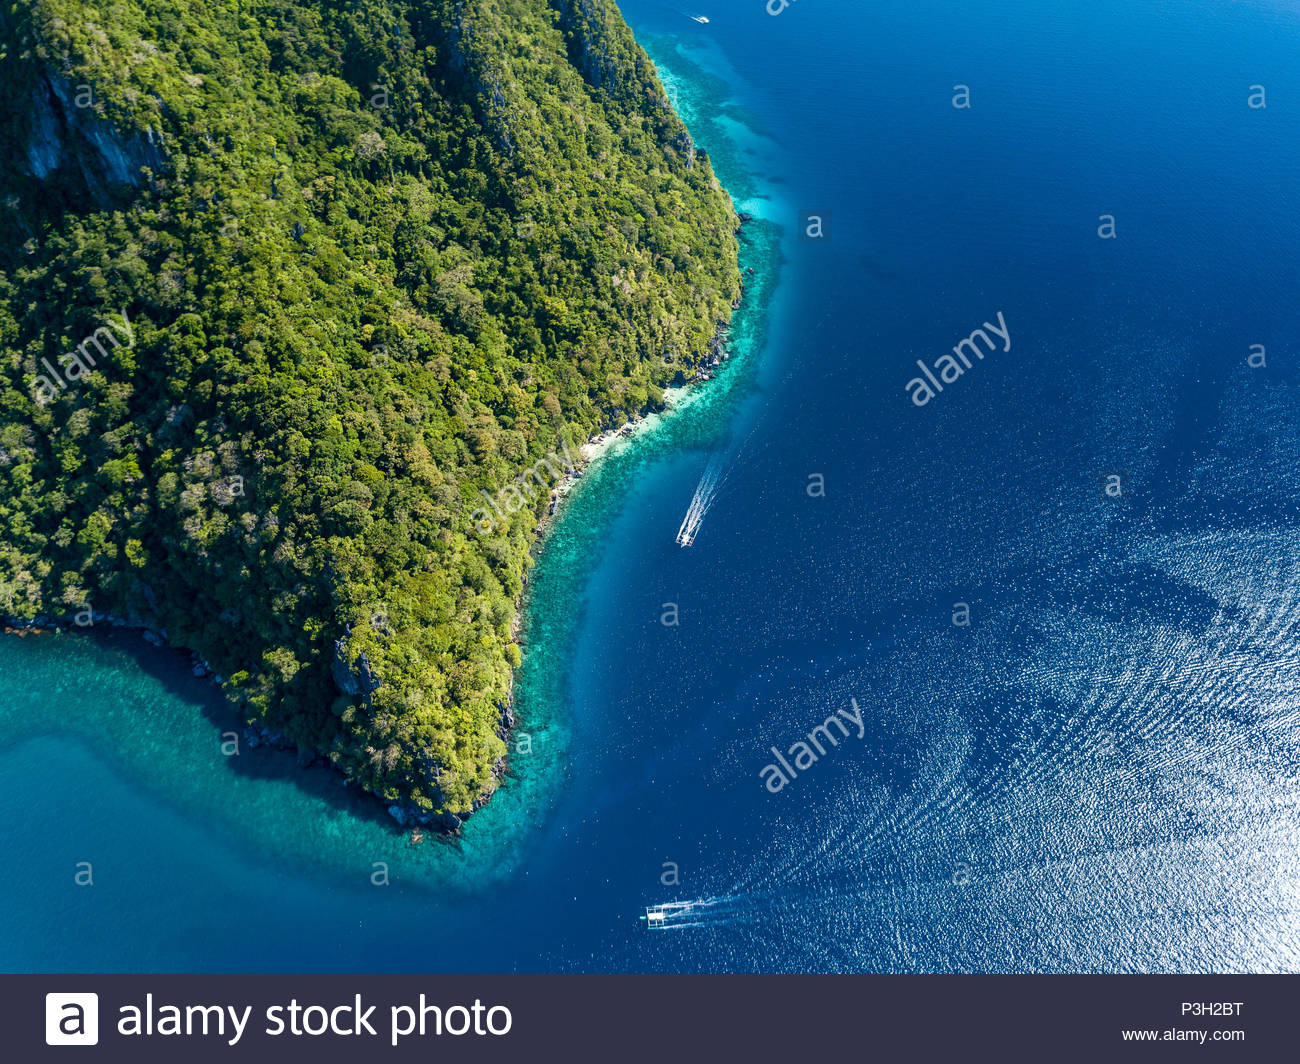 Aerial drone view down onto boats over a tropical coral reef surrounded by mountains and jungle - Stock Image